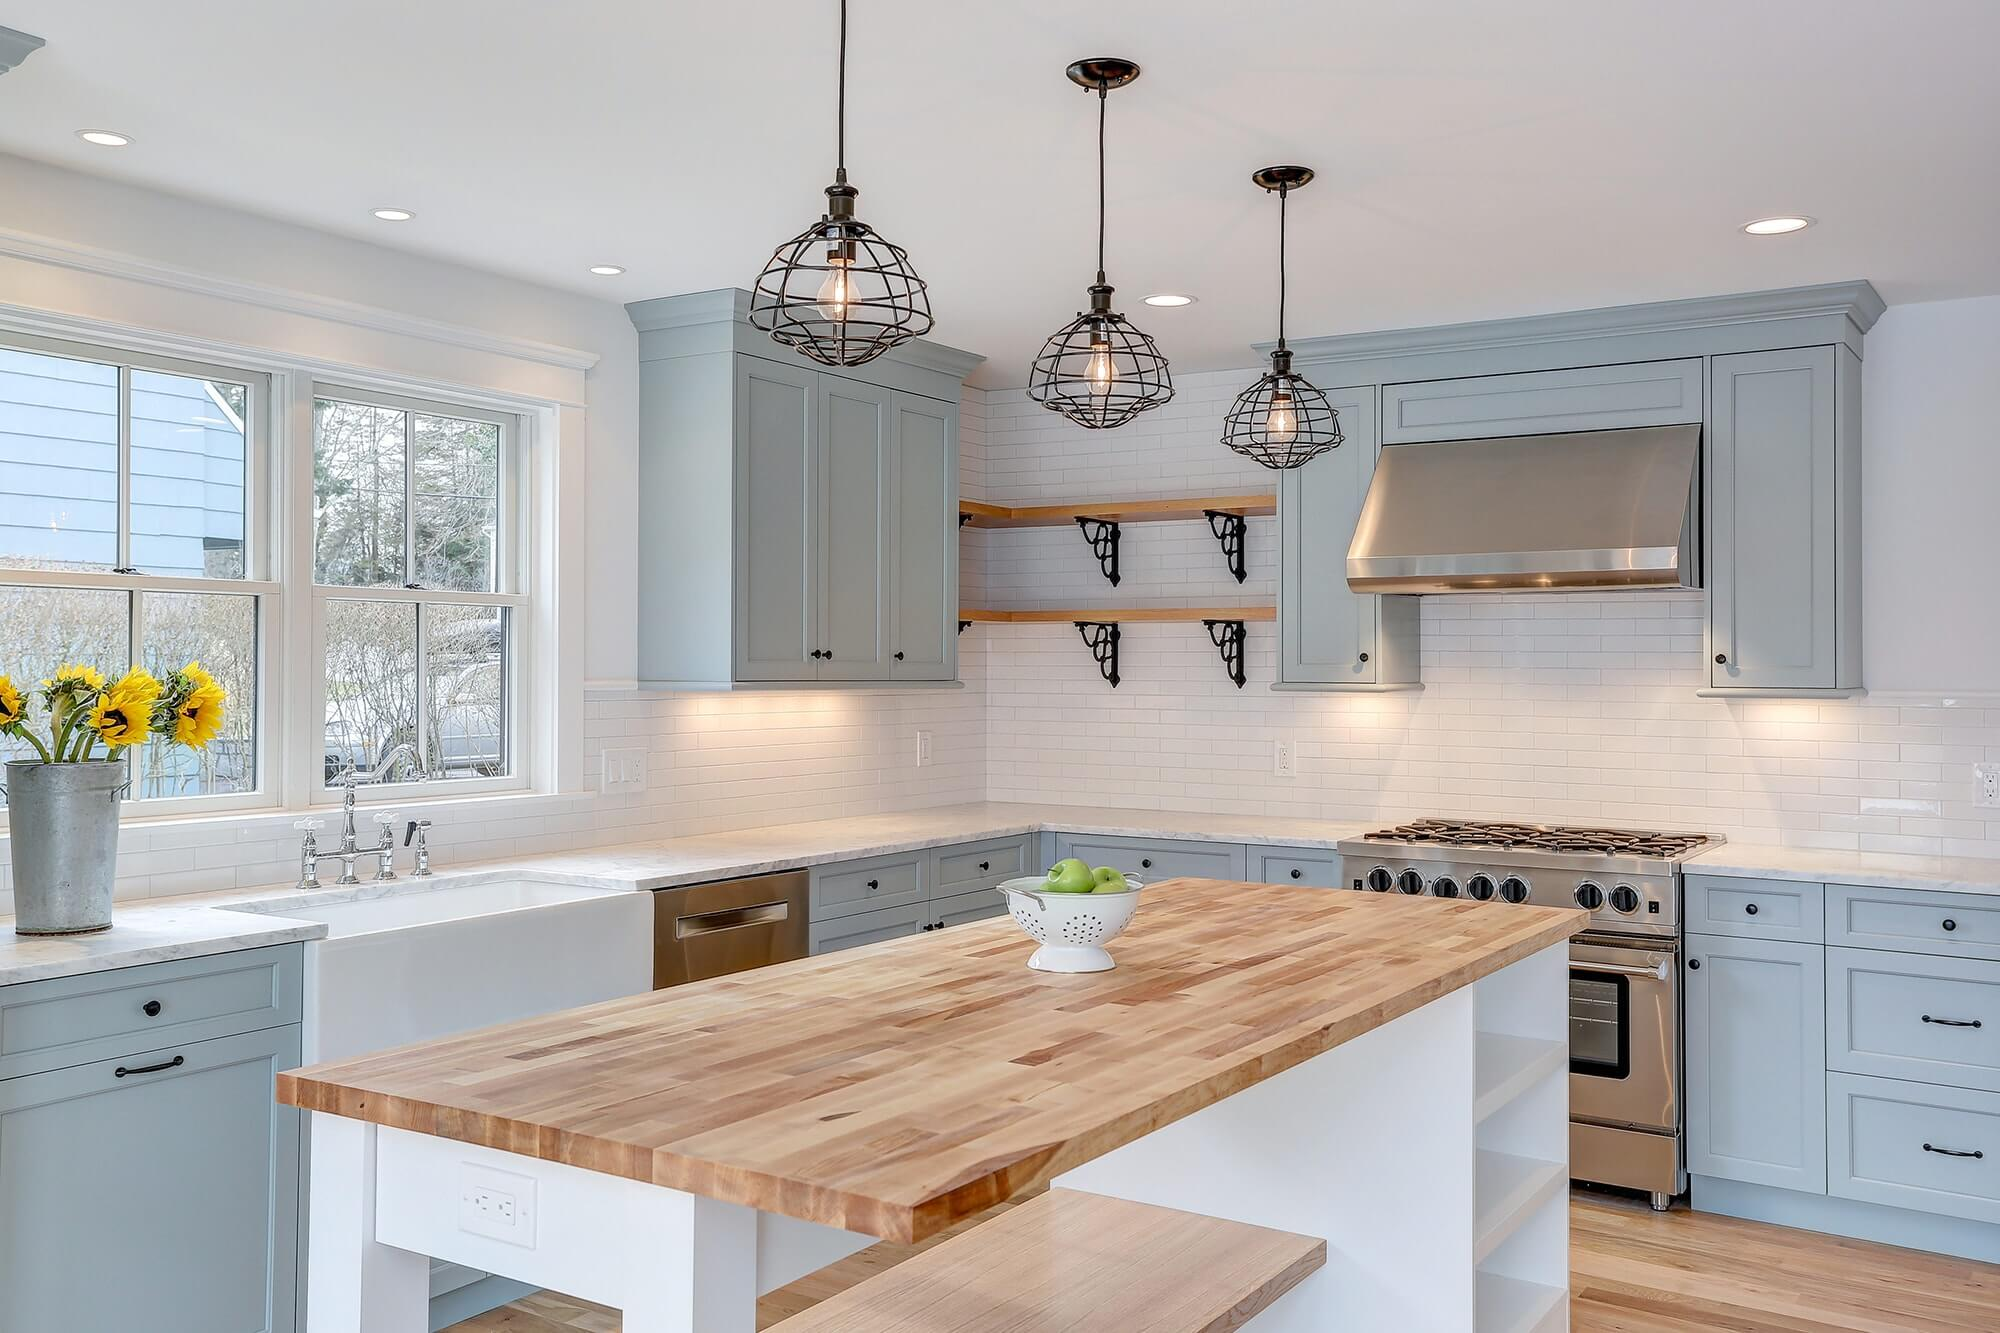 35 Best Farmhouse Kitchen Cabinet Ideas And Designs For